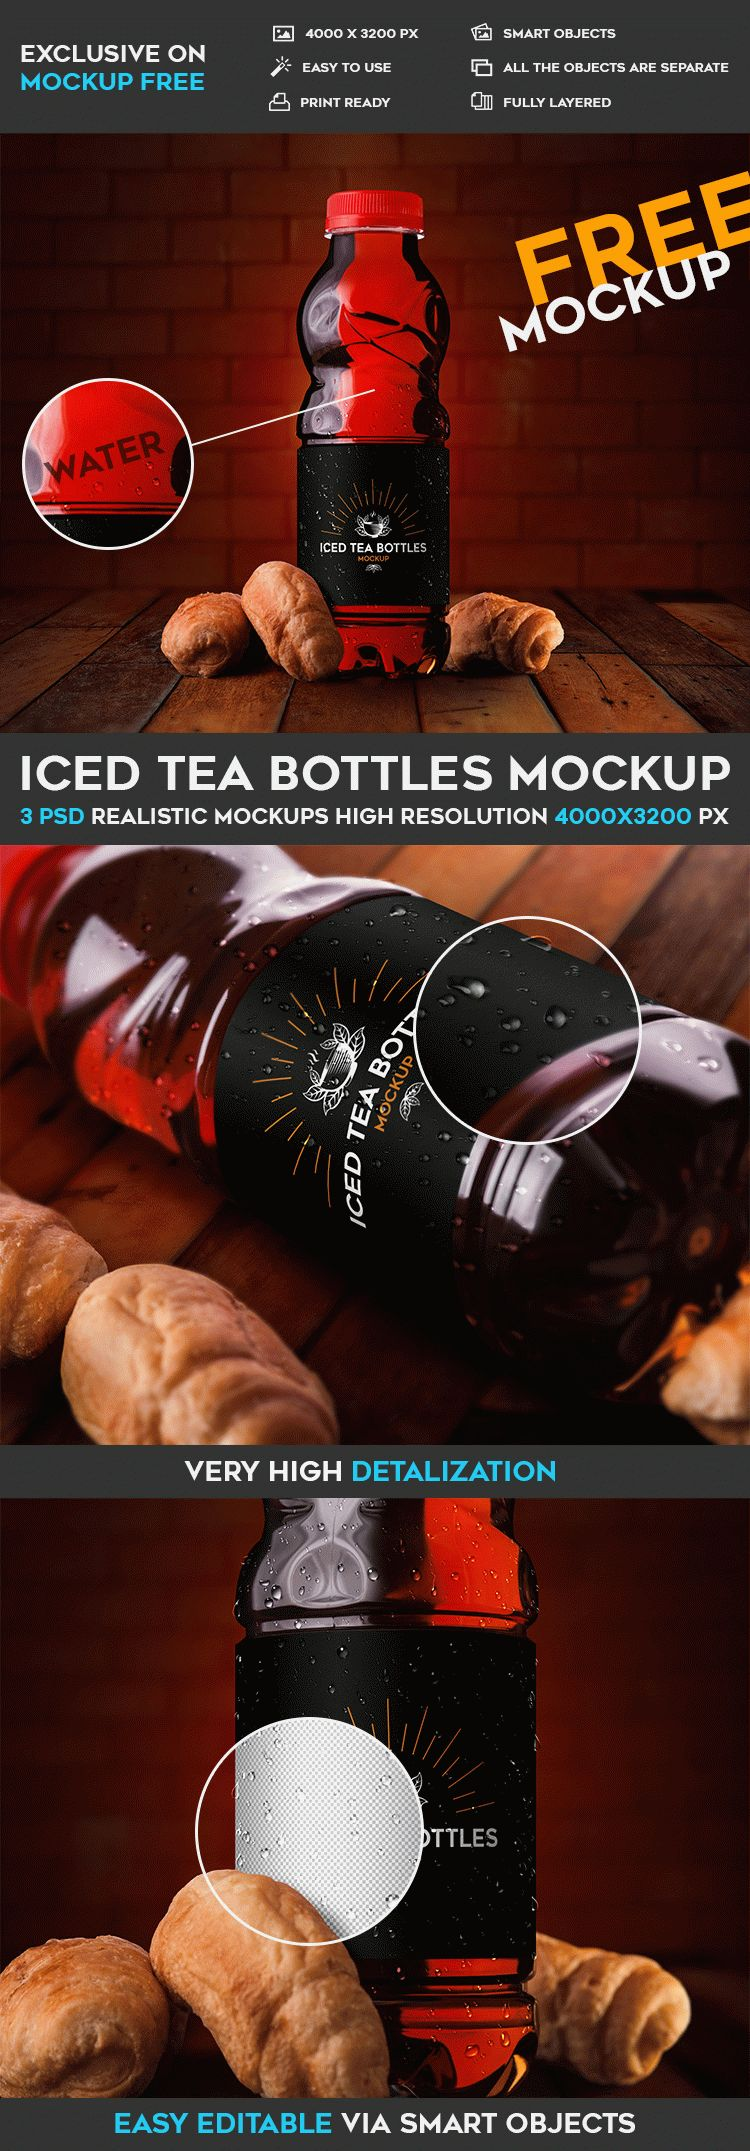 bigpreview_iced-tea-bottles-mockup-template-free-in-psd